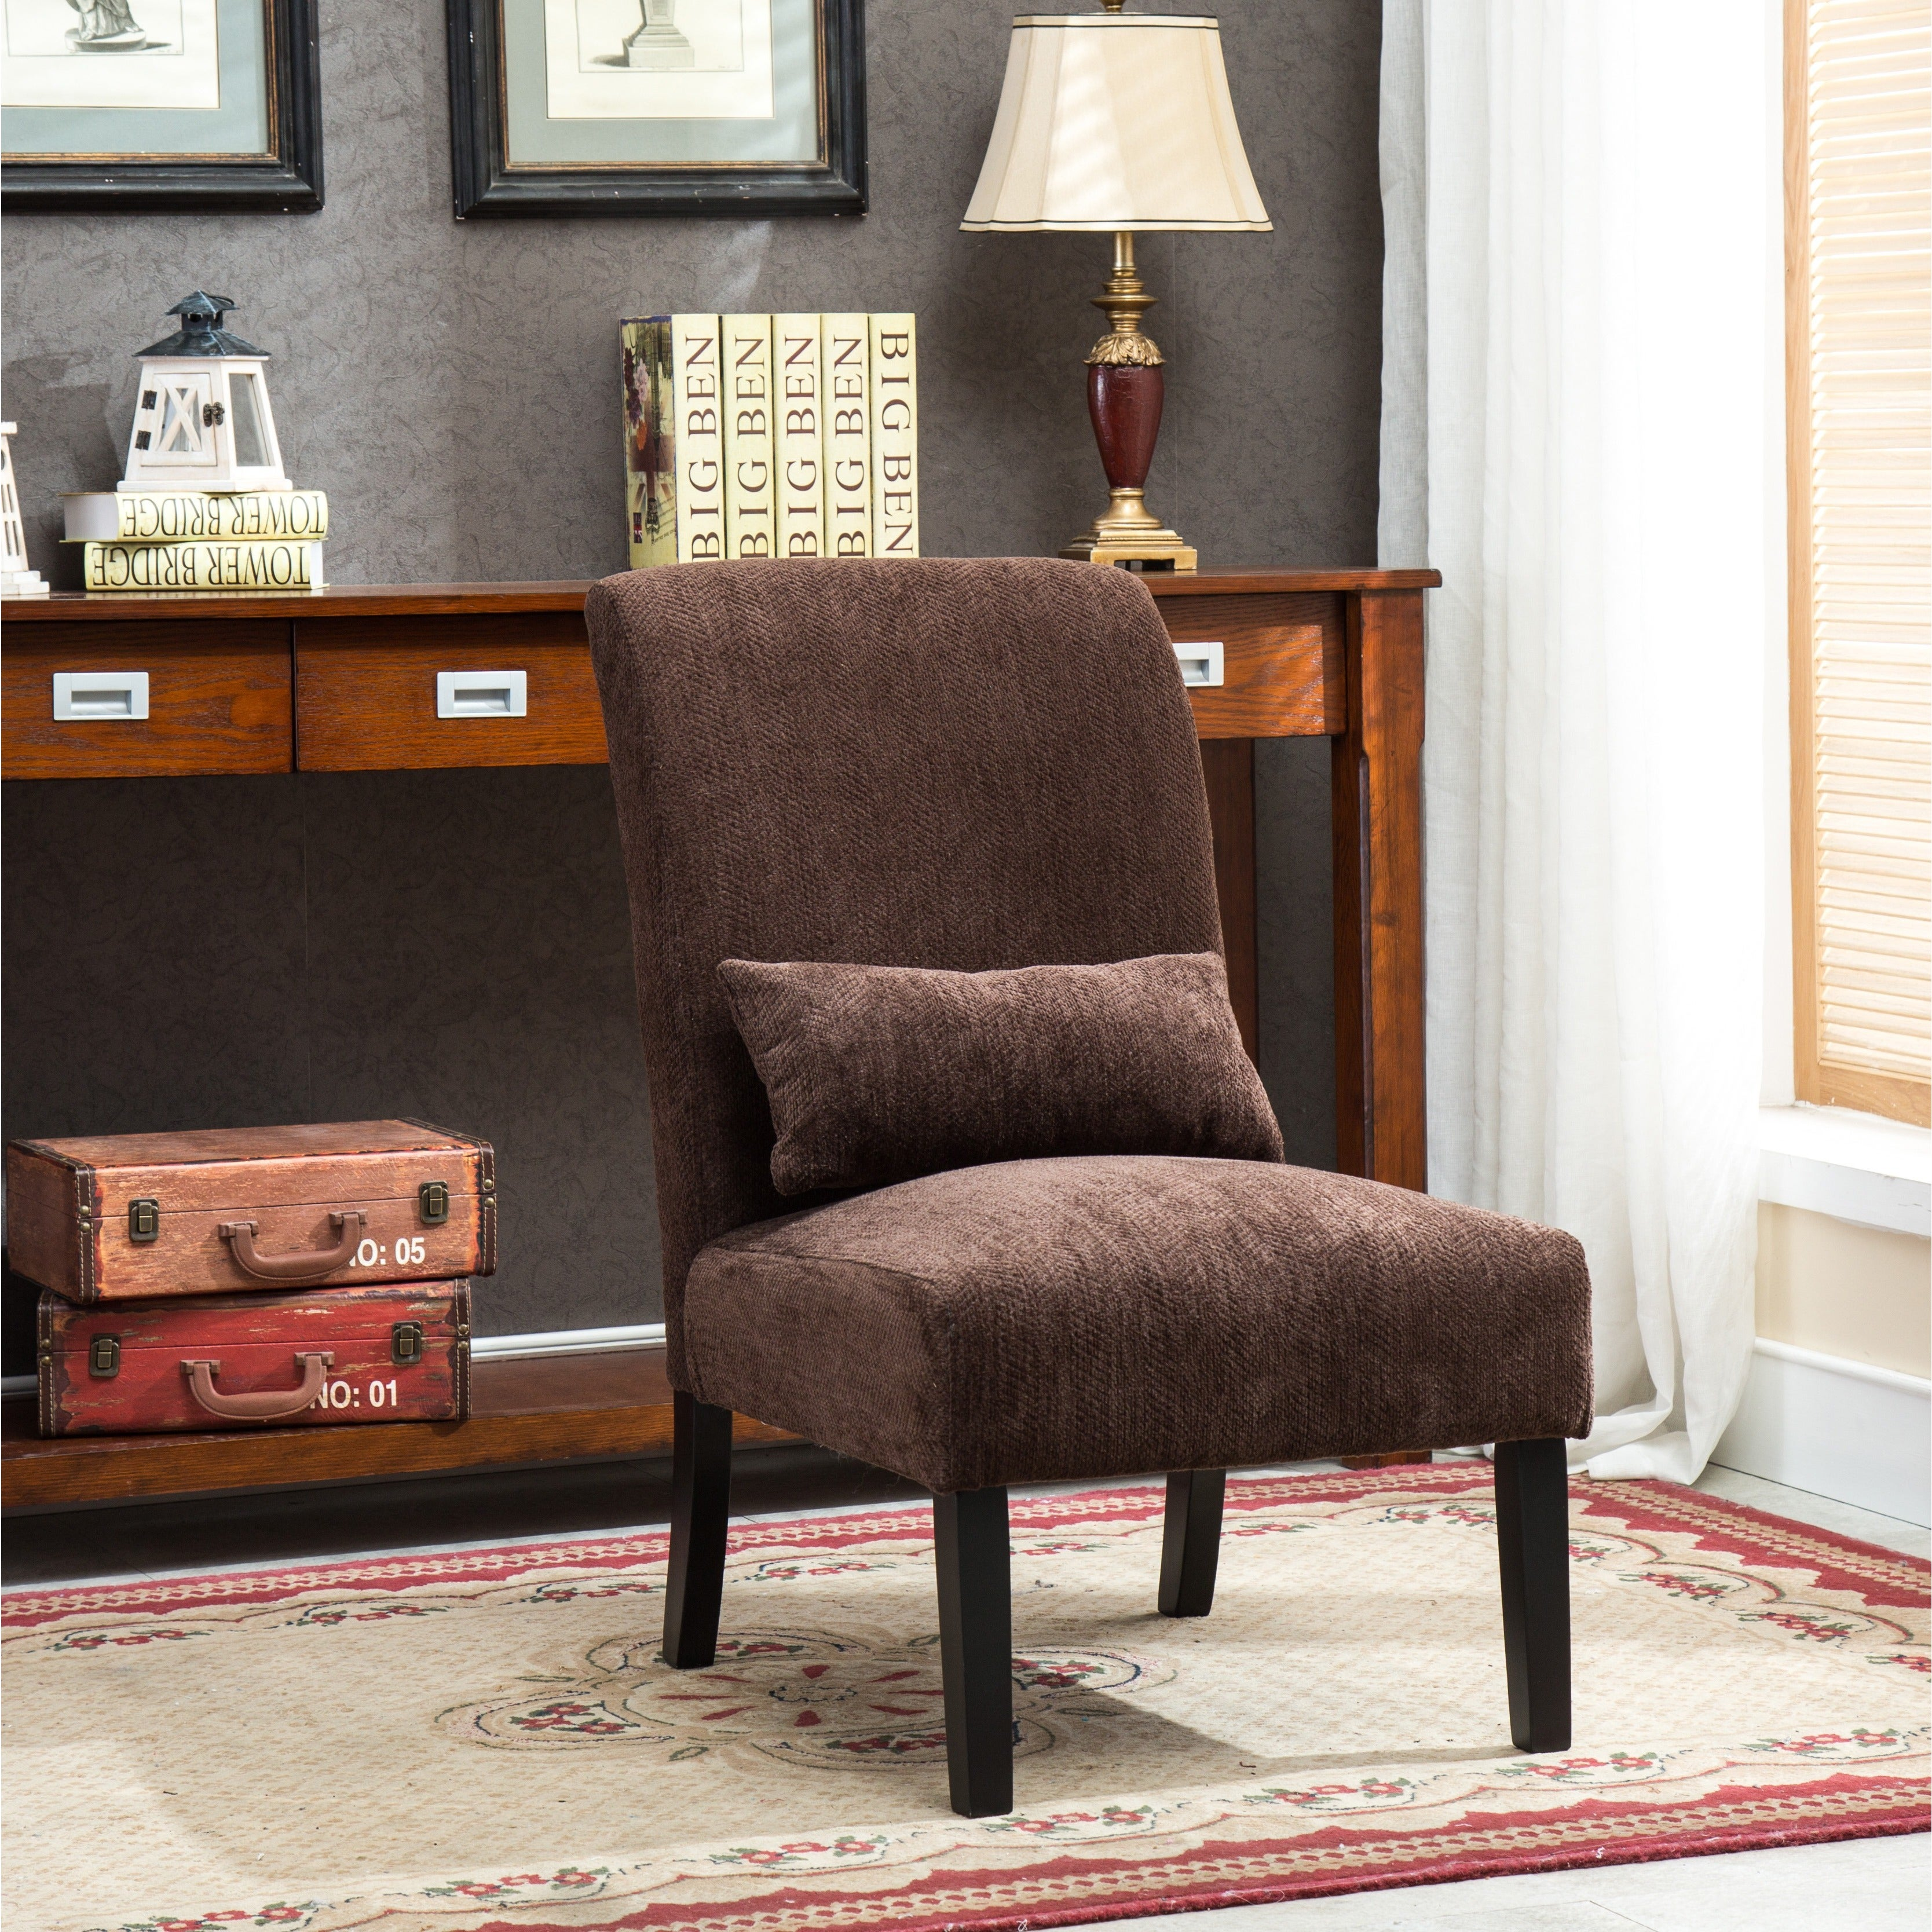 Pisano chenille Fabric Armless Contemporary Accent Chair ...